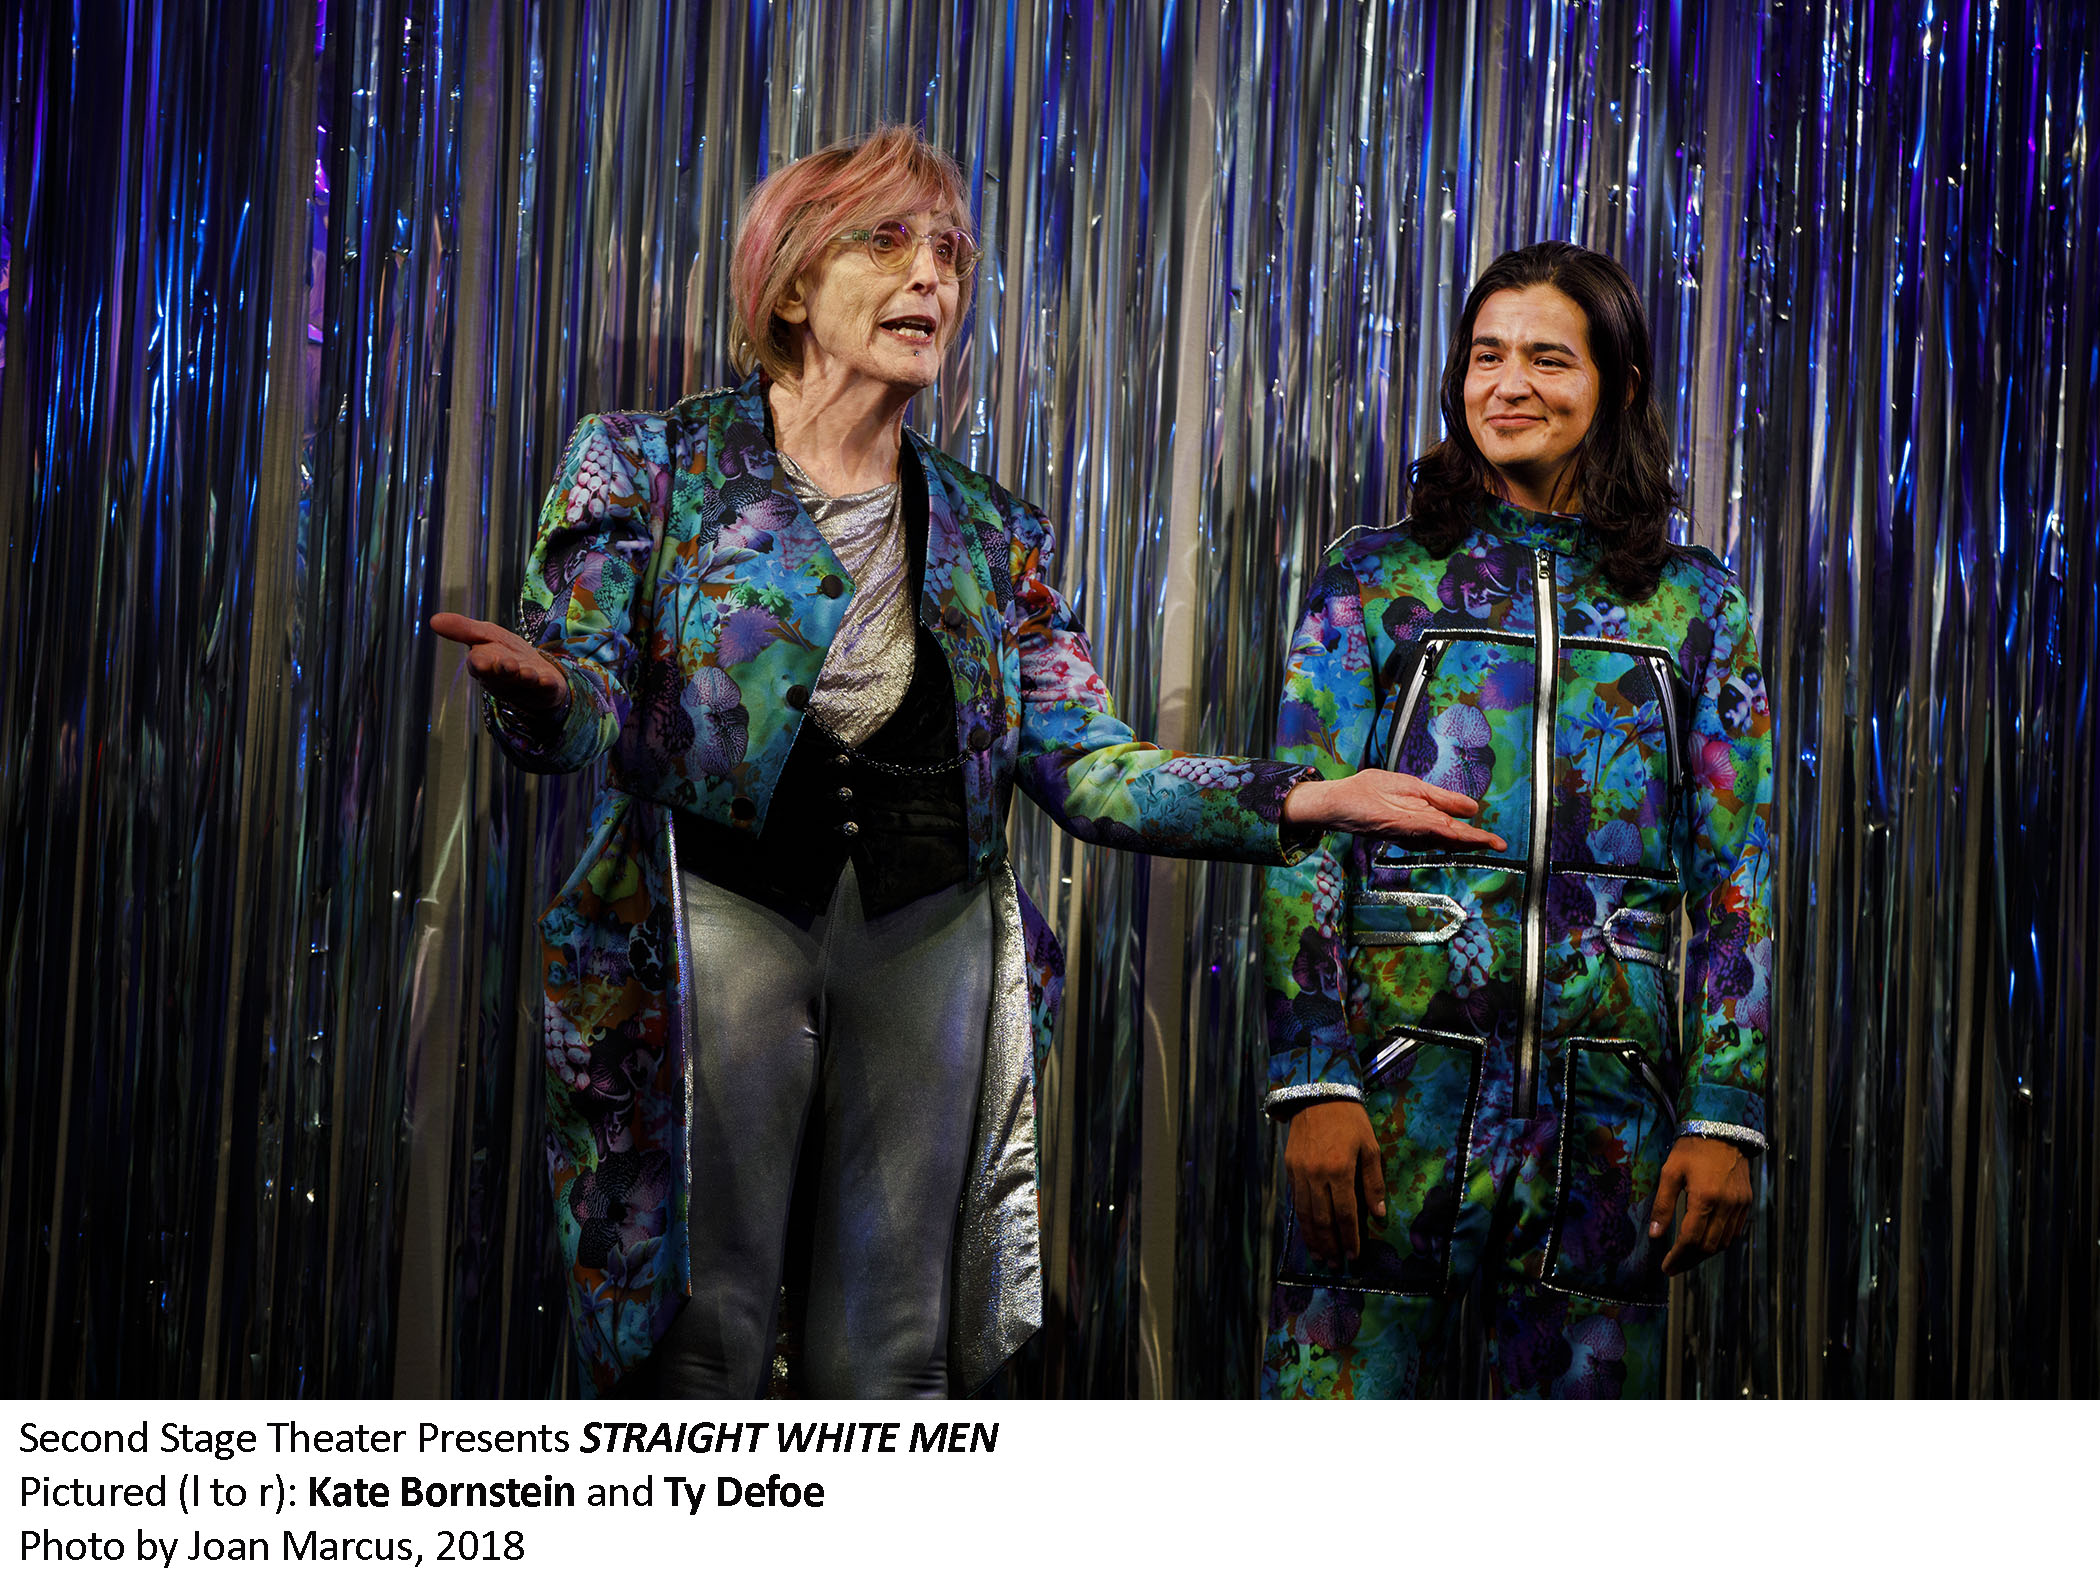 0005_Kate Bornstein and Ty Defoe in STRAIGHT WHITE MEN, Photo by Joan Marcus, 2018.jpg